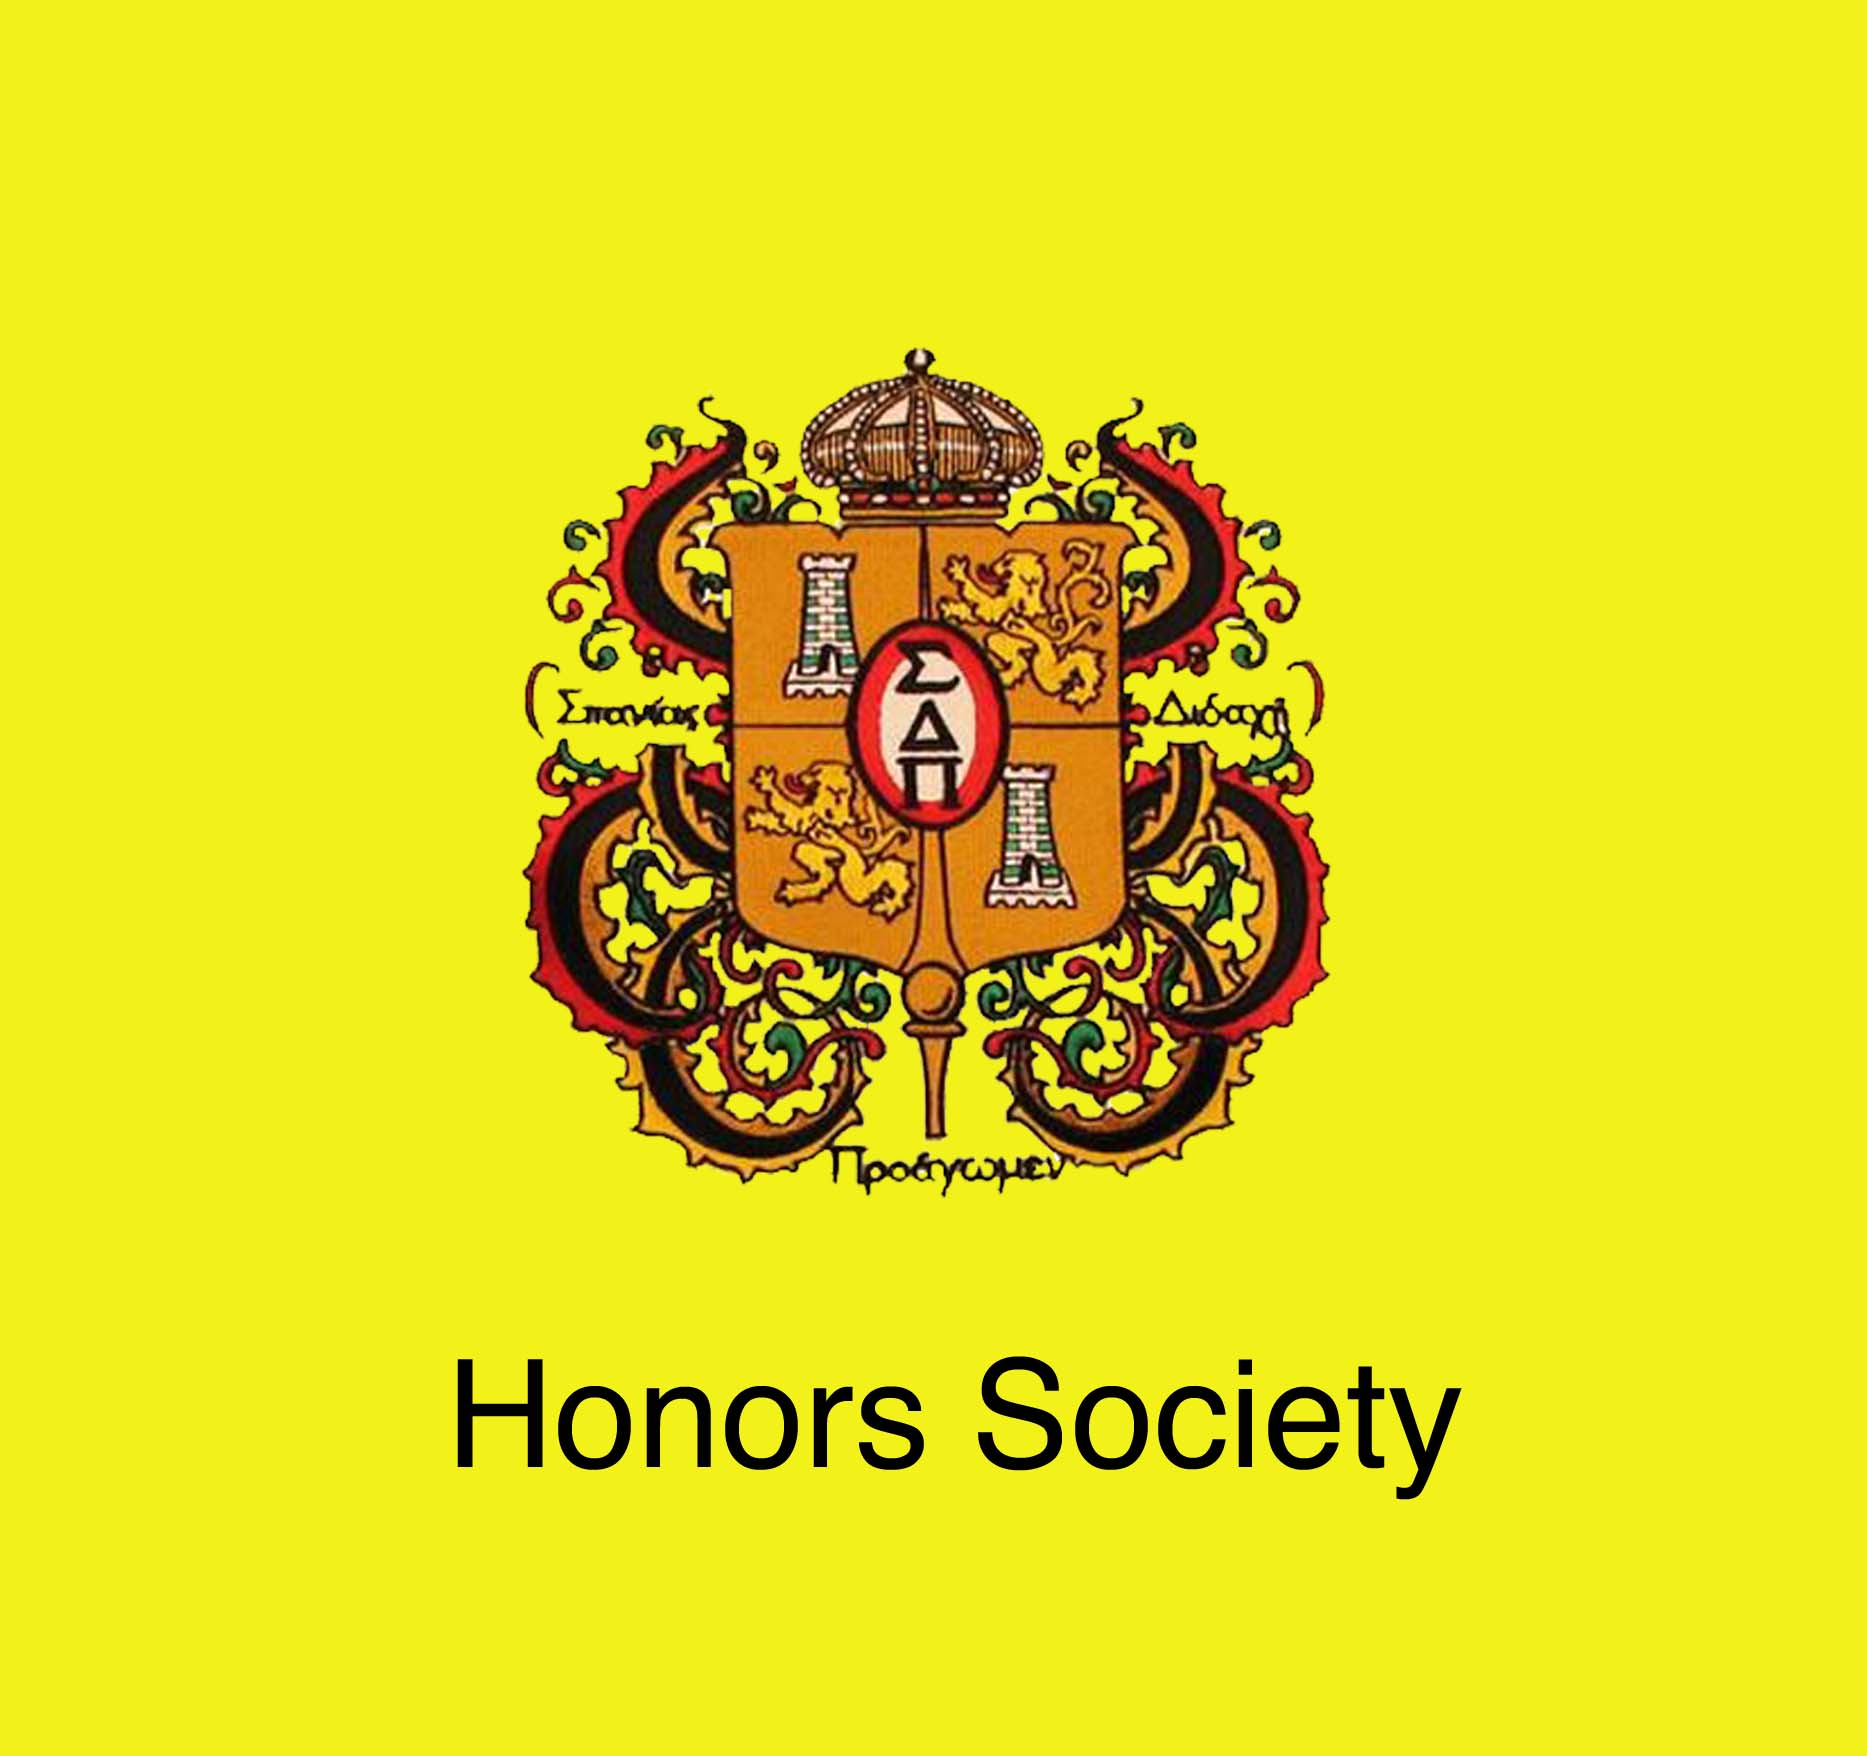 Honors Society